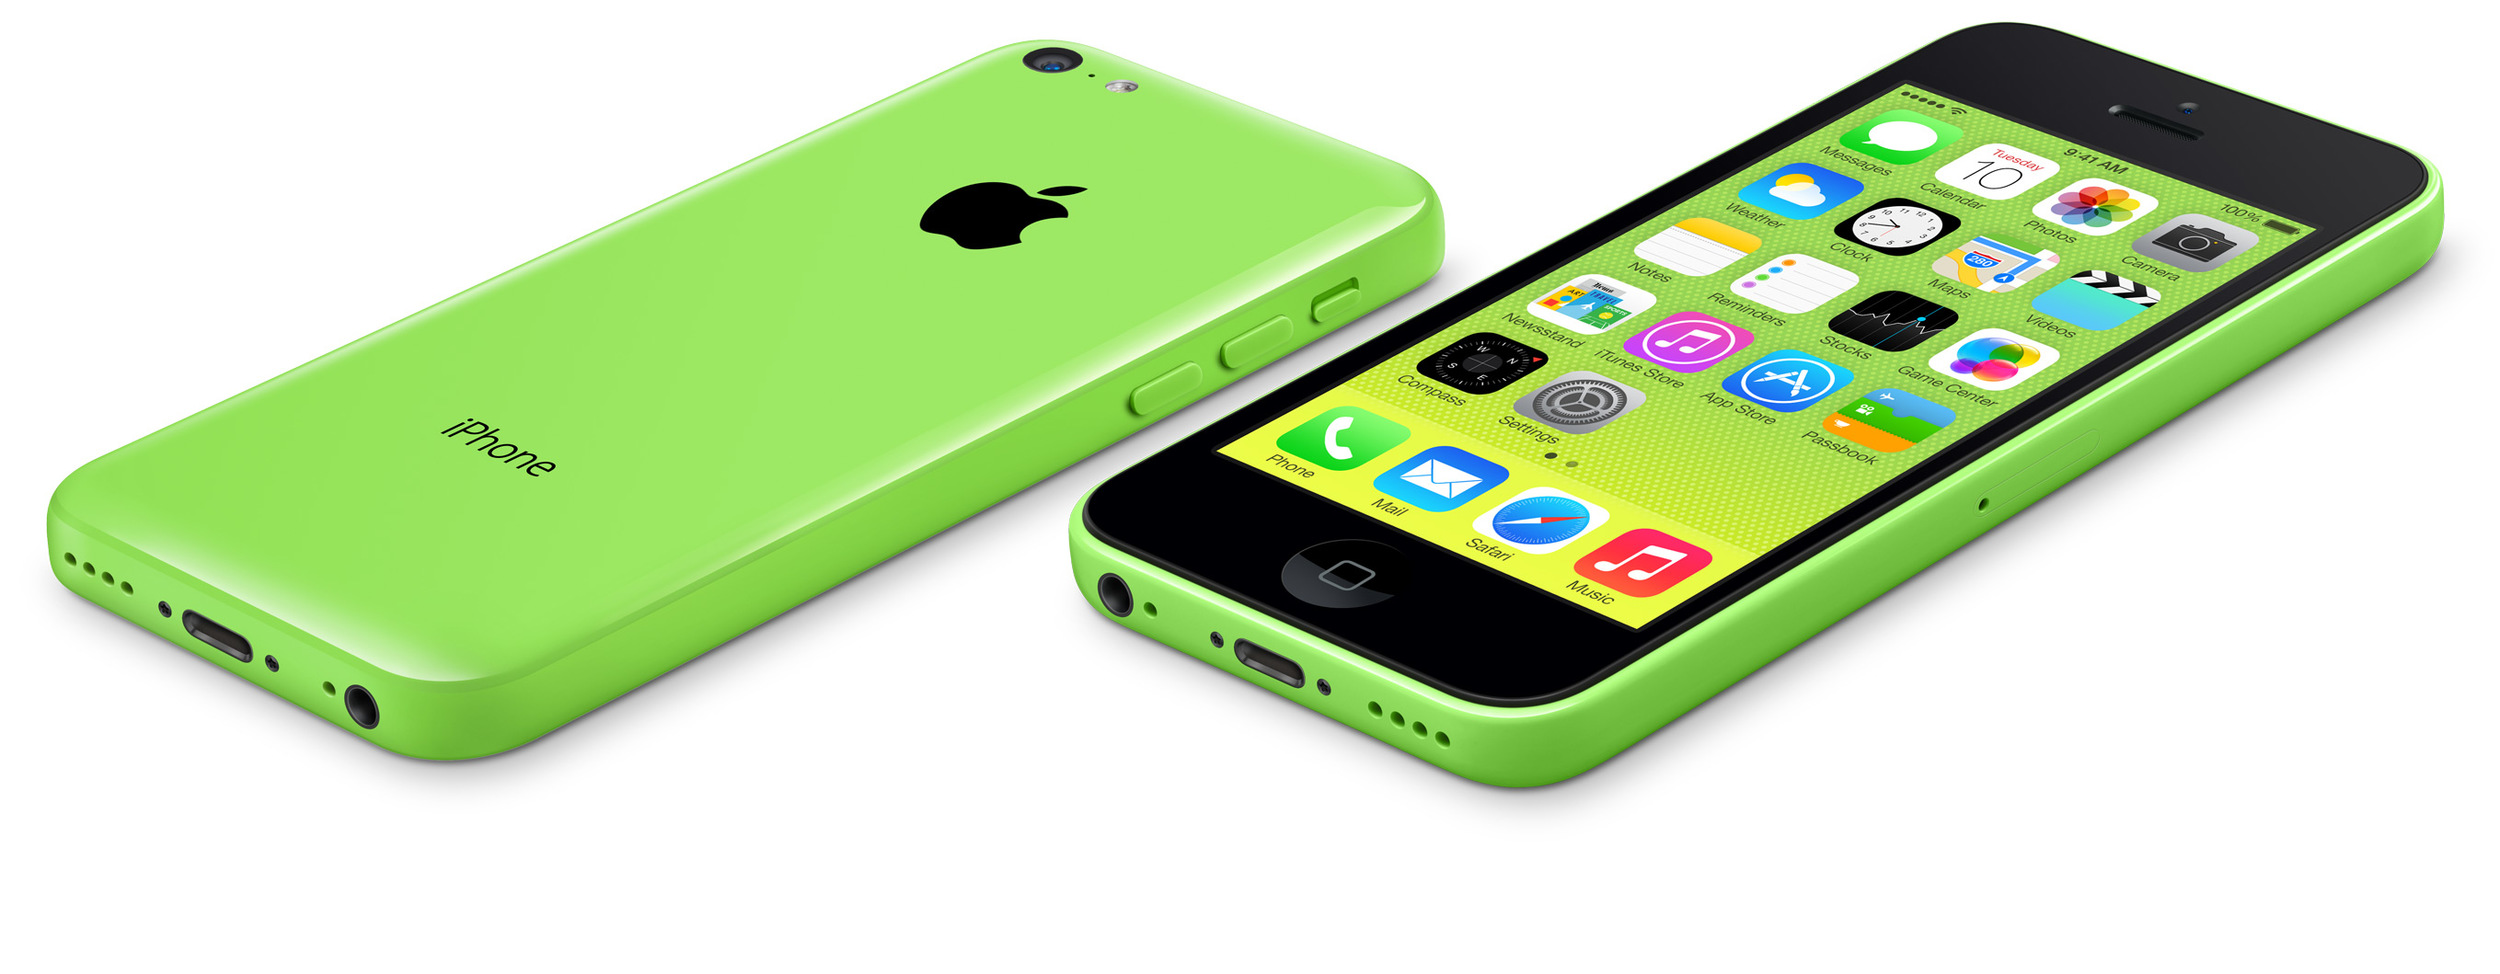 Remember the green iPhone 5c? Yeah, that didn't go over too well...